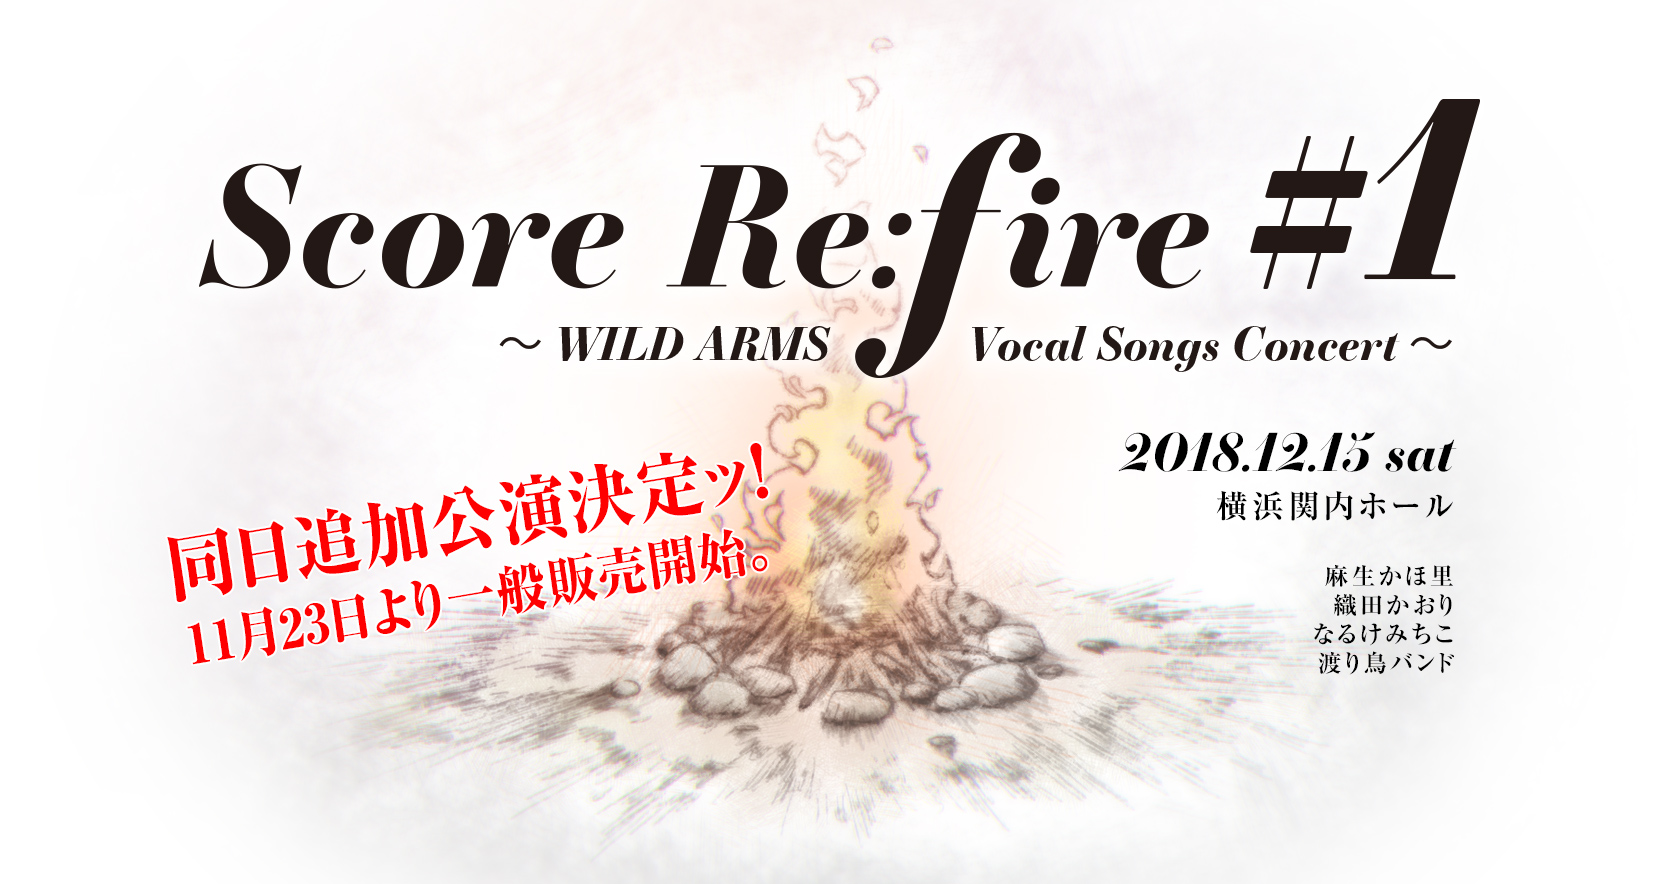 2018年12月15日(土)『Score Re;fire #1 ~WILD ARMS Vocal Songs Concert~』開催